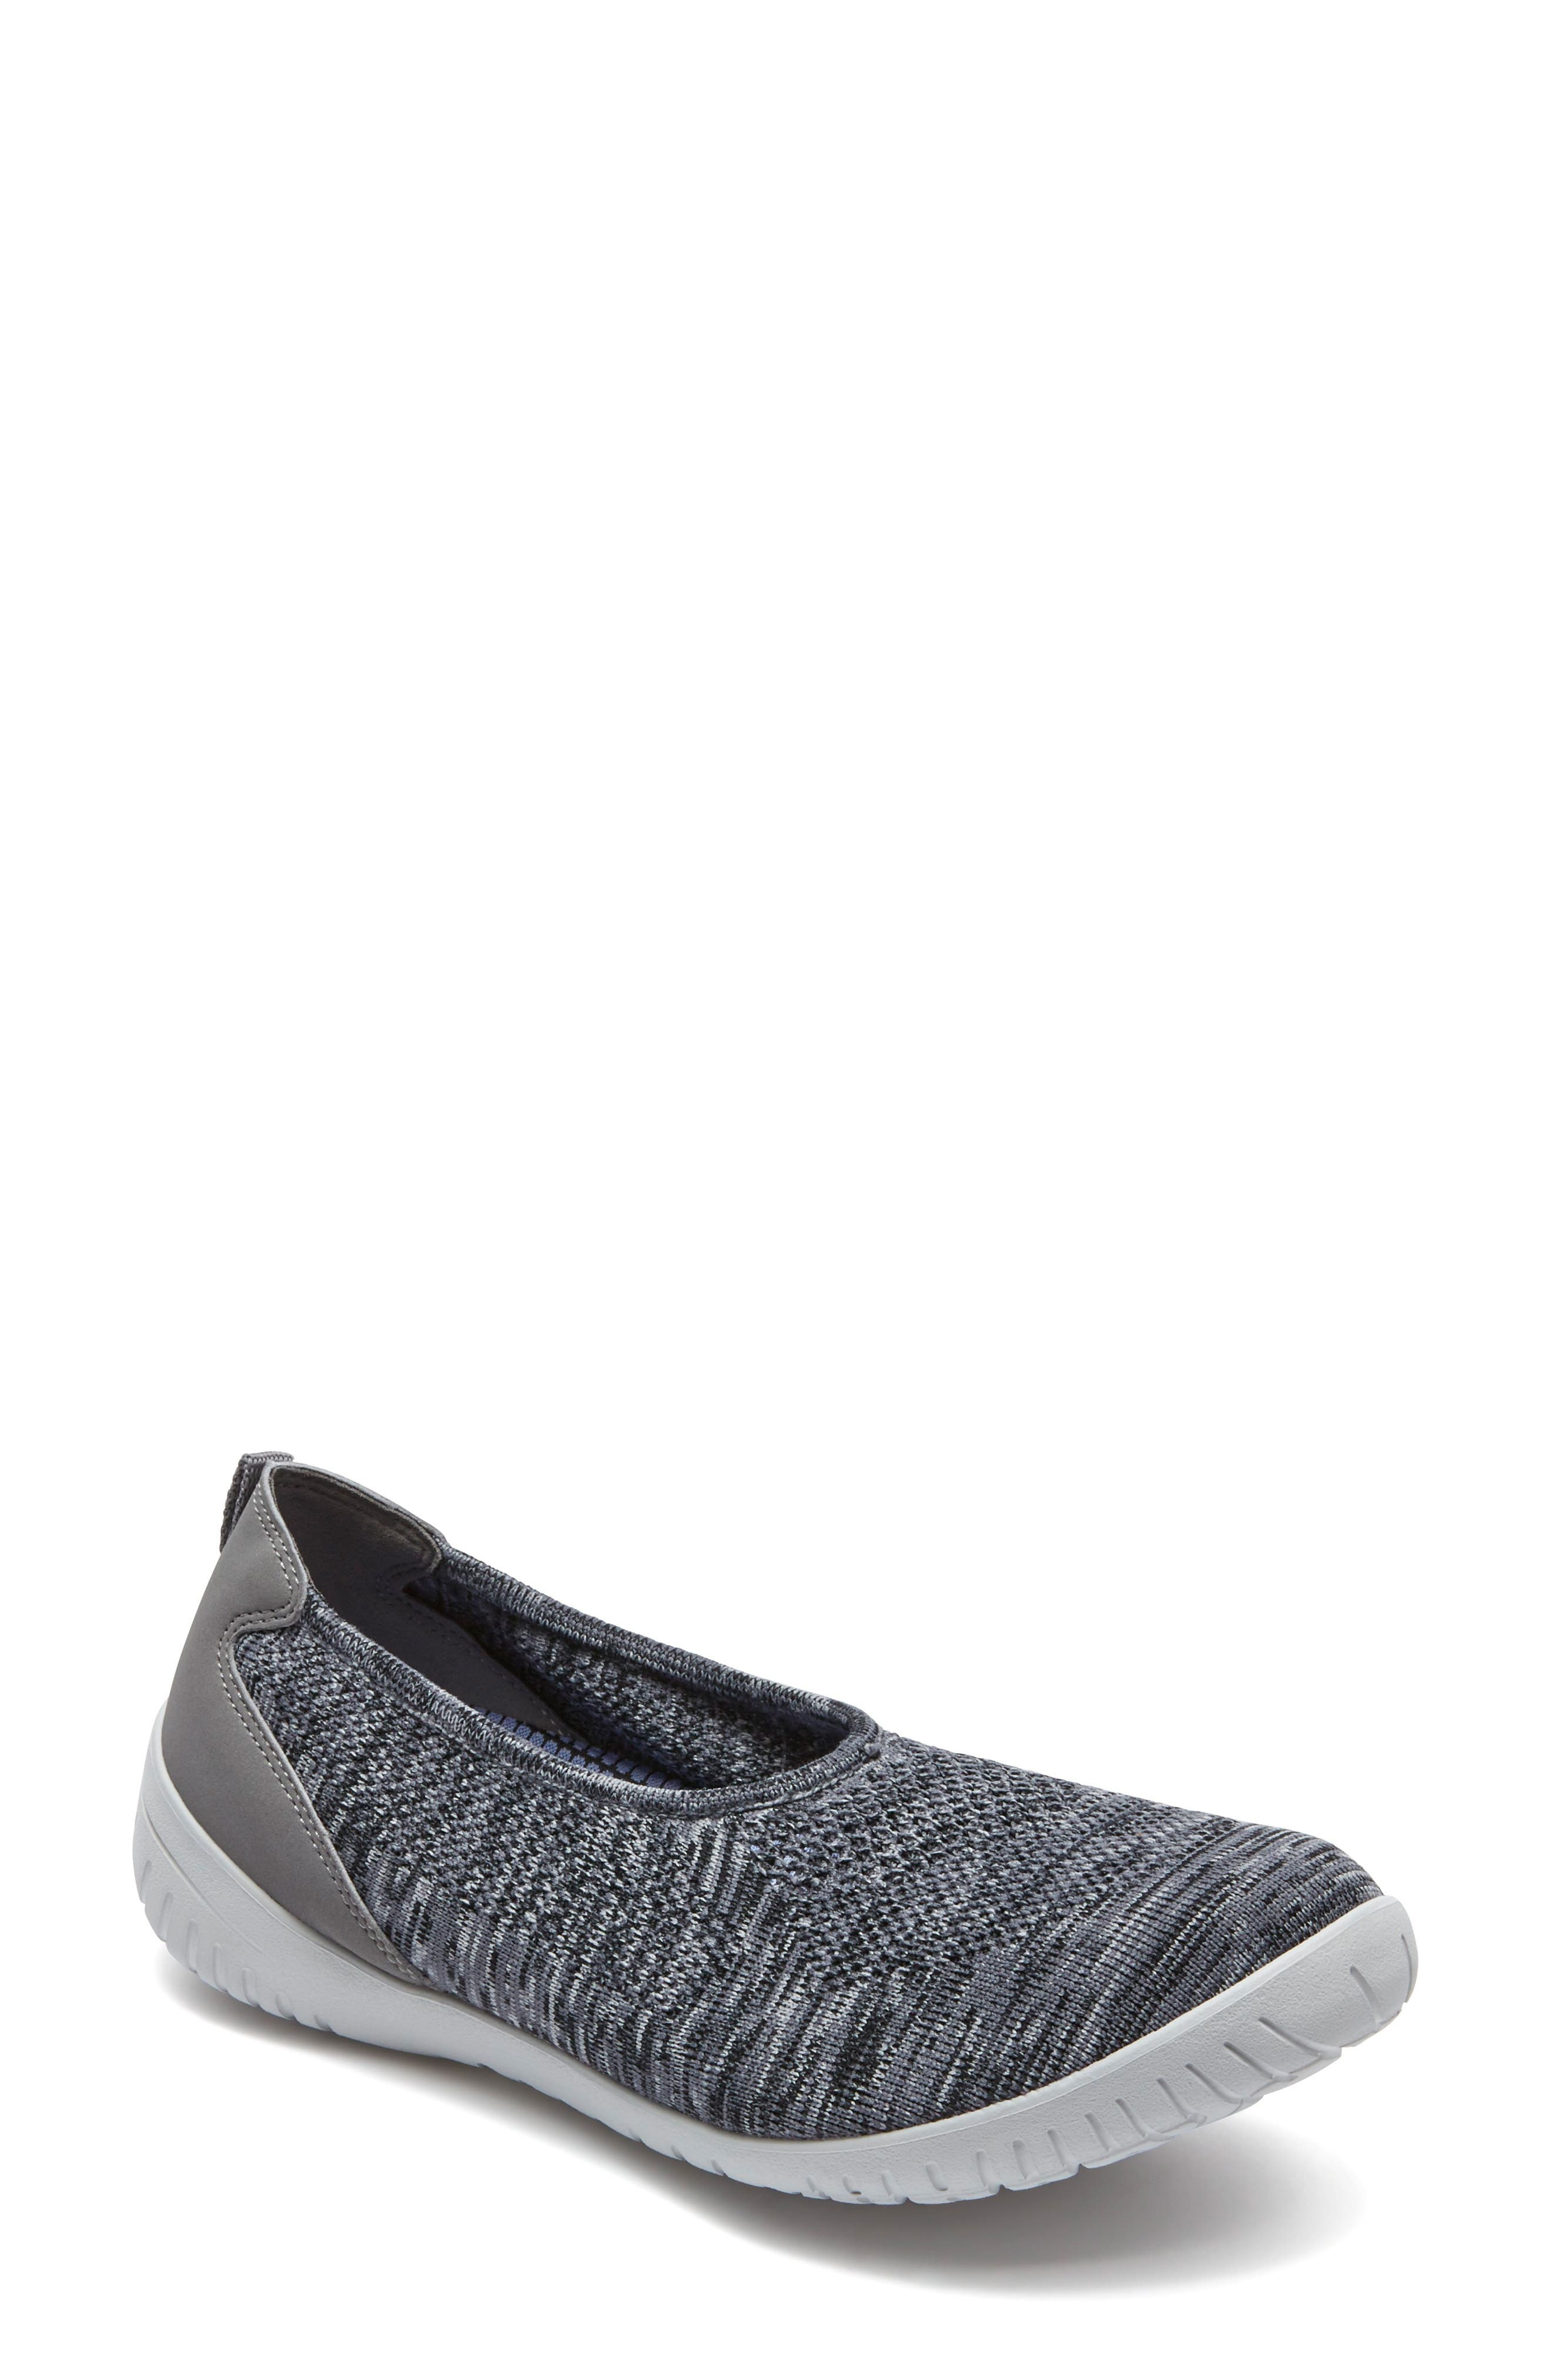 Rockport Raelyn Knit Ballet Sneaker (Women)